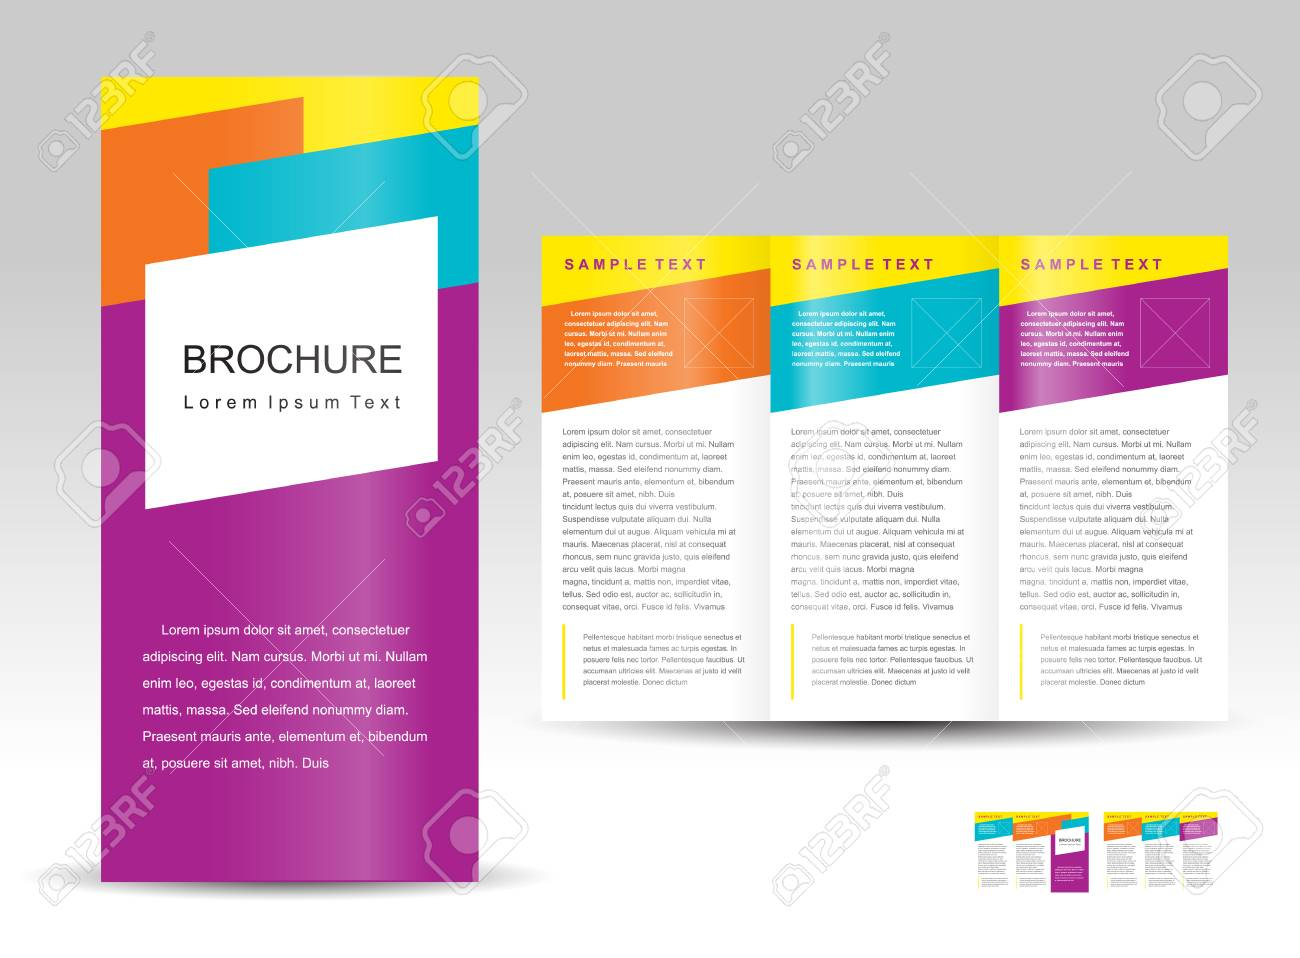 Vector brochure tri-fold layout design template colorful. - 97272151